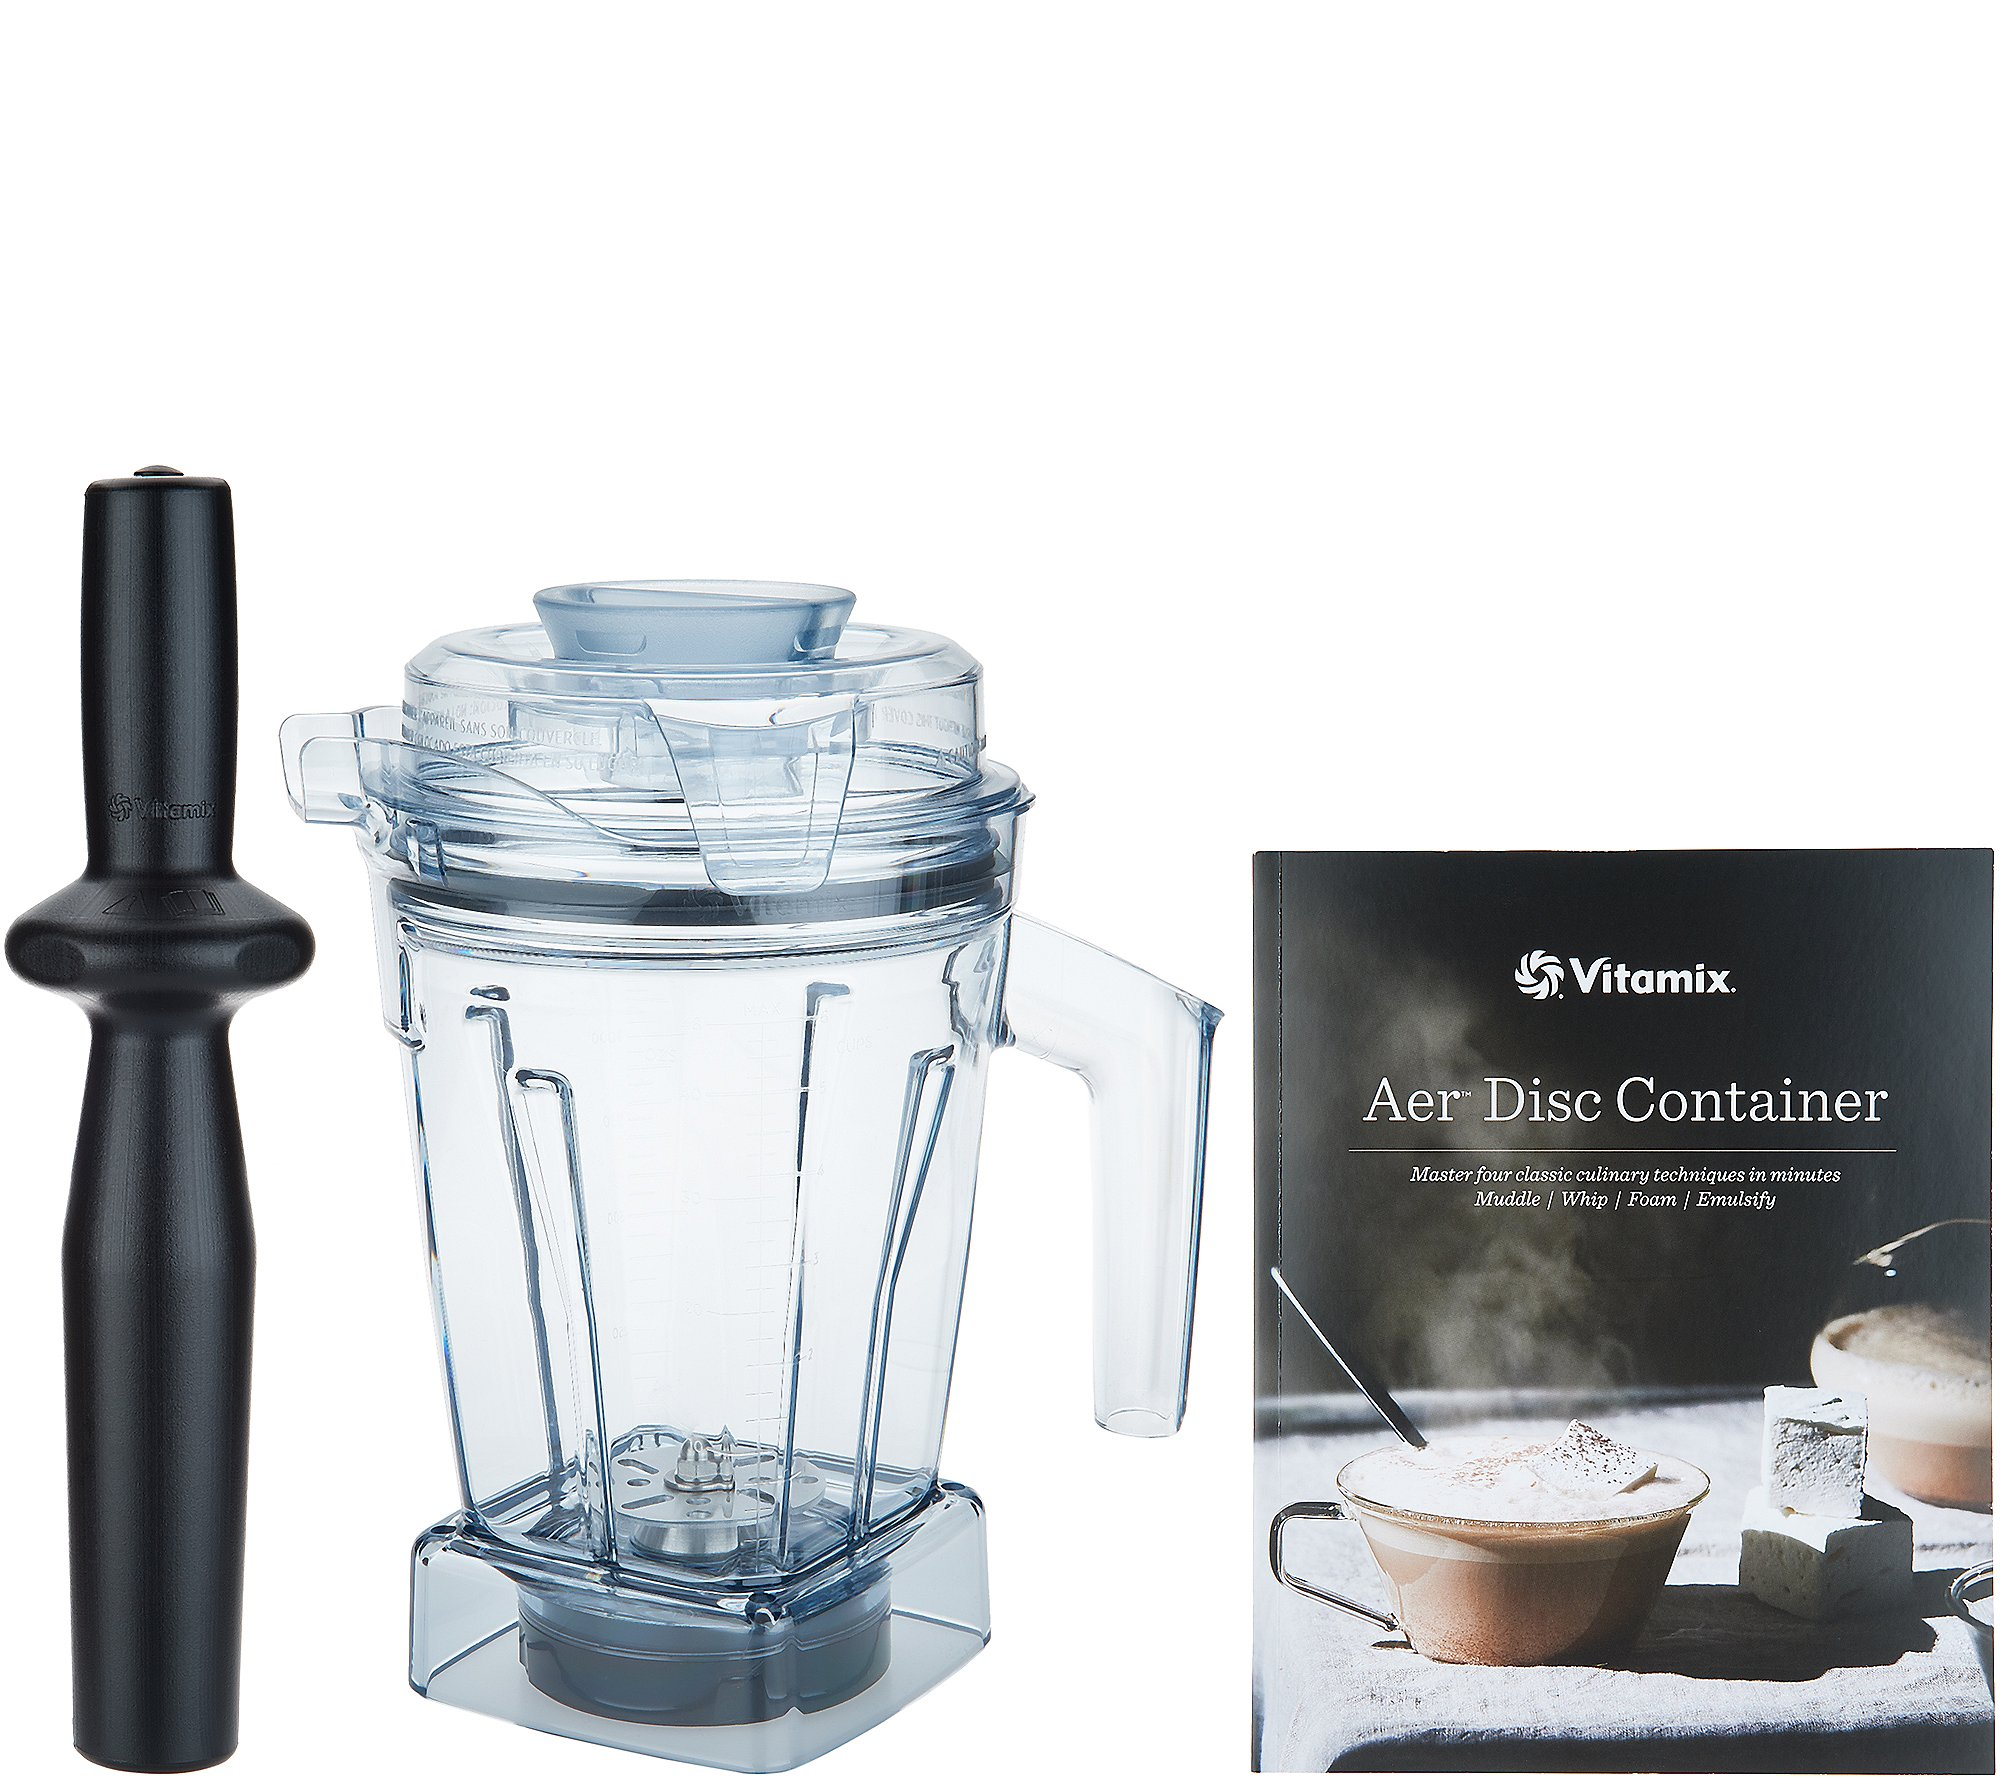 Vitamix Aer Disc 6 In 1 48 Oz Specialty Container With Recipe Book Qvc Com